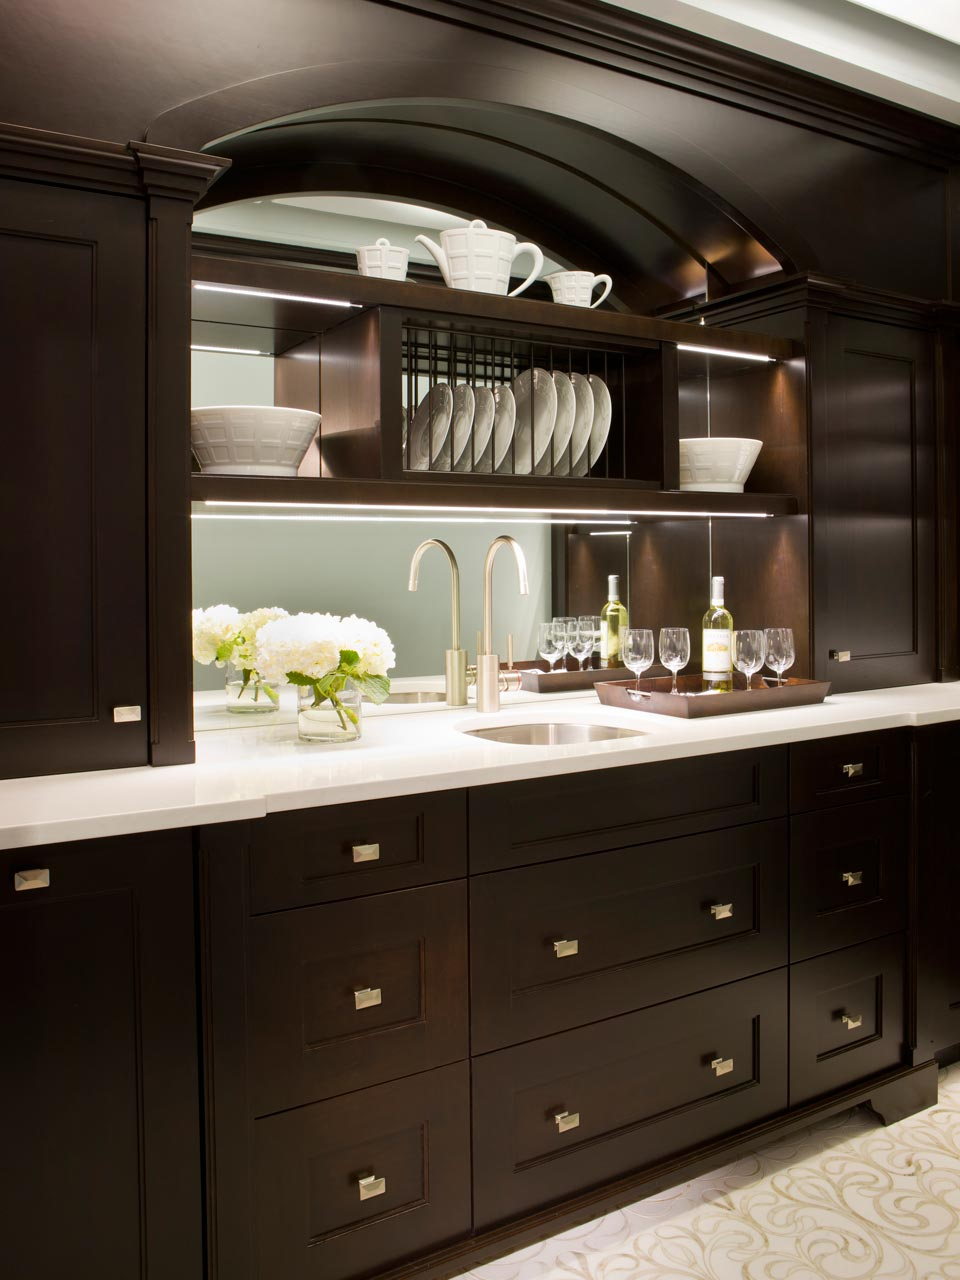 Elegant NYC butler's pantry features fully custom shaker style, frameless Rutt Handcrafted Cabinetry in walnut with a dark stain, mirror backsplash, white quartz countertop, and undermount sink with satin finish stainless faucet. Cabinetry features some open shelving to display dishes. Design by Tom Vecchio of Bilotta Kitchens.